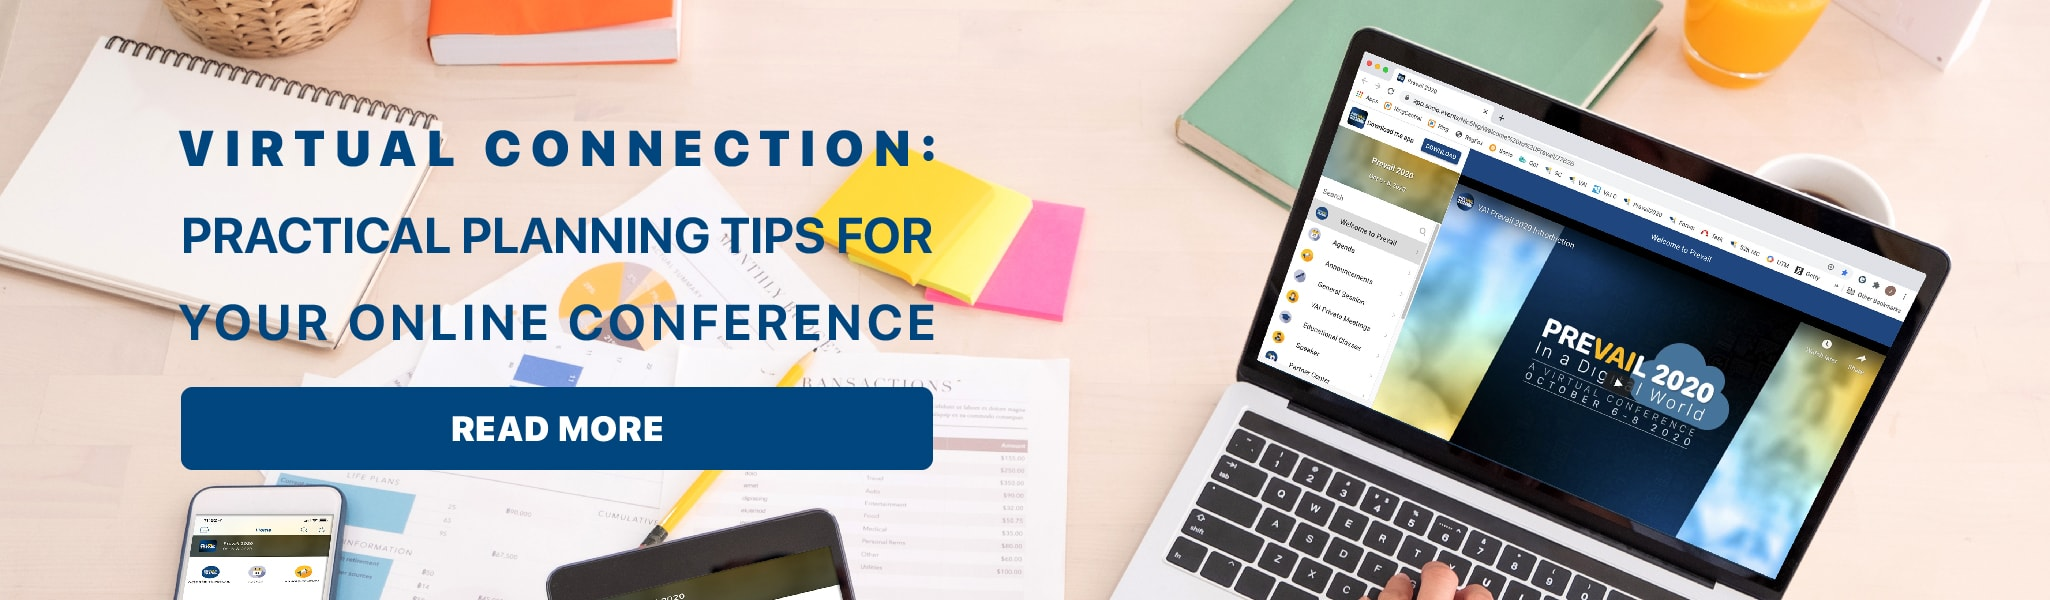 Virtual Connection: Practical Planning Tips for Your Online Conference